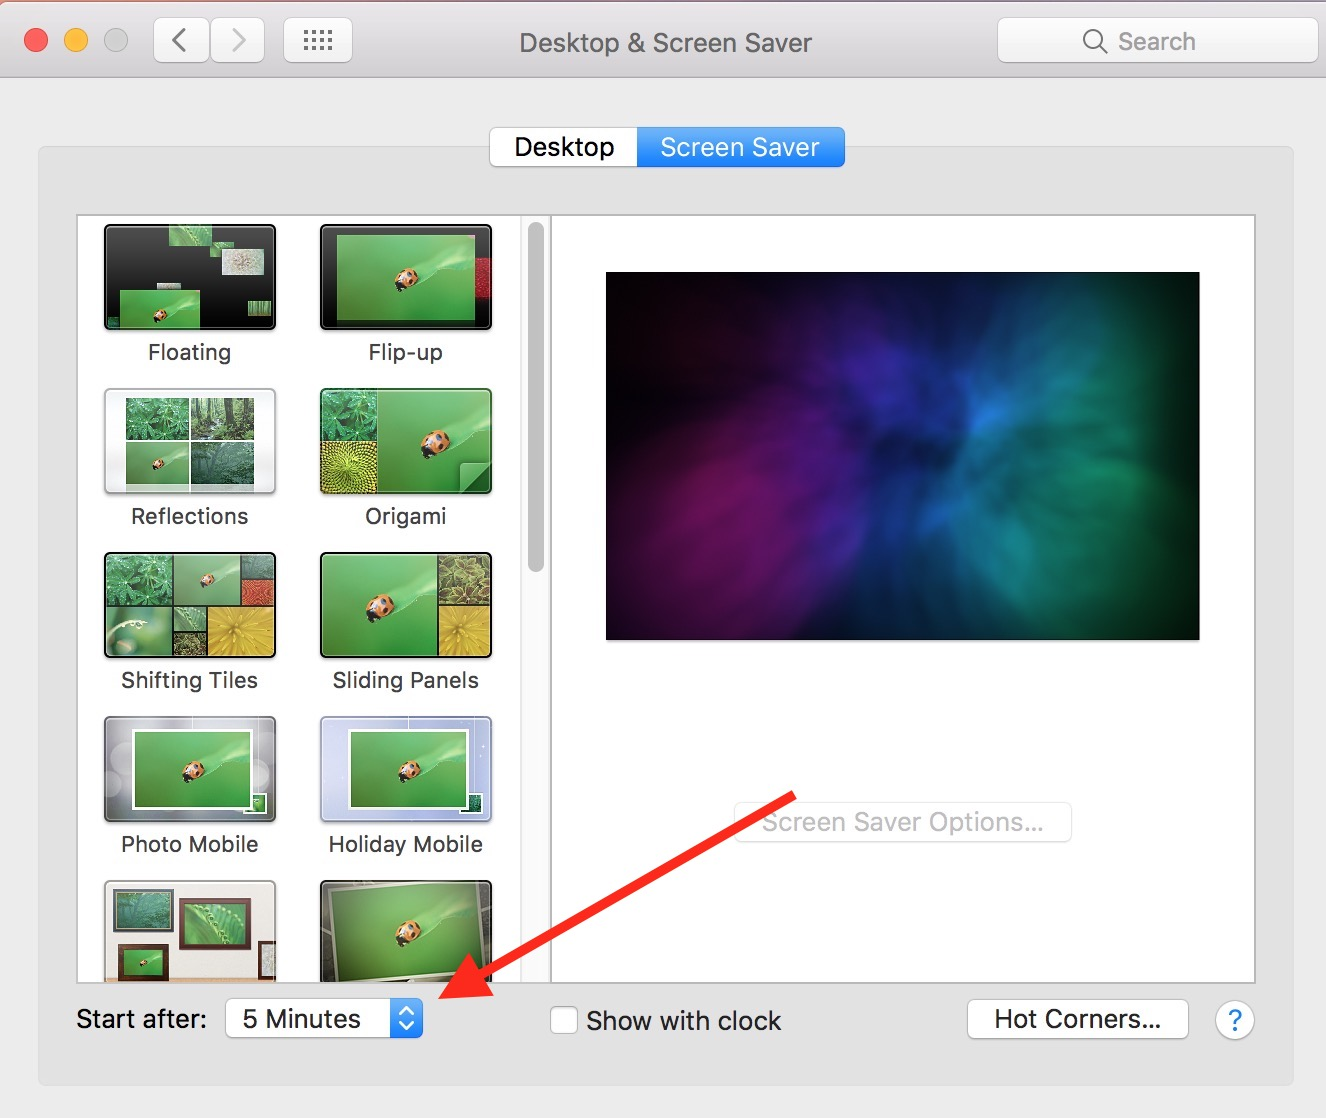 Use Desktop & Screen Saver settings to control how quickly your Mac screen saver starts and requires a password